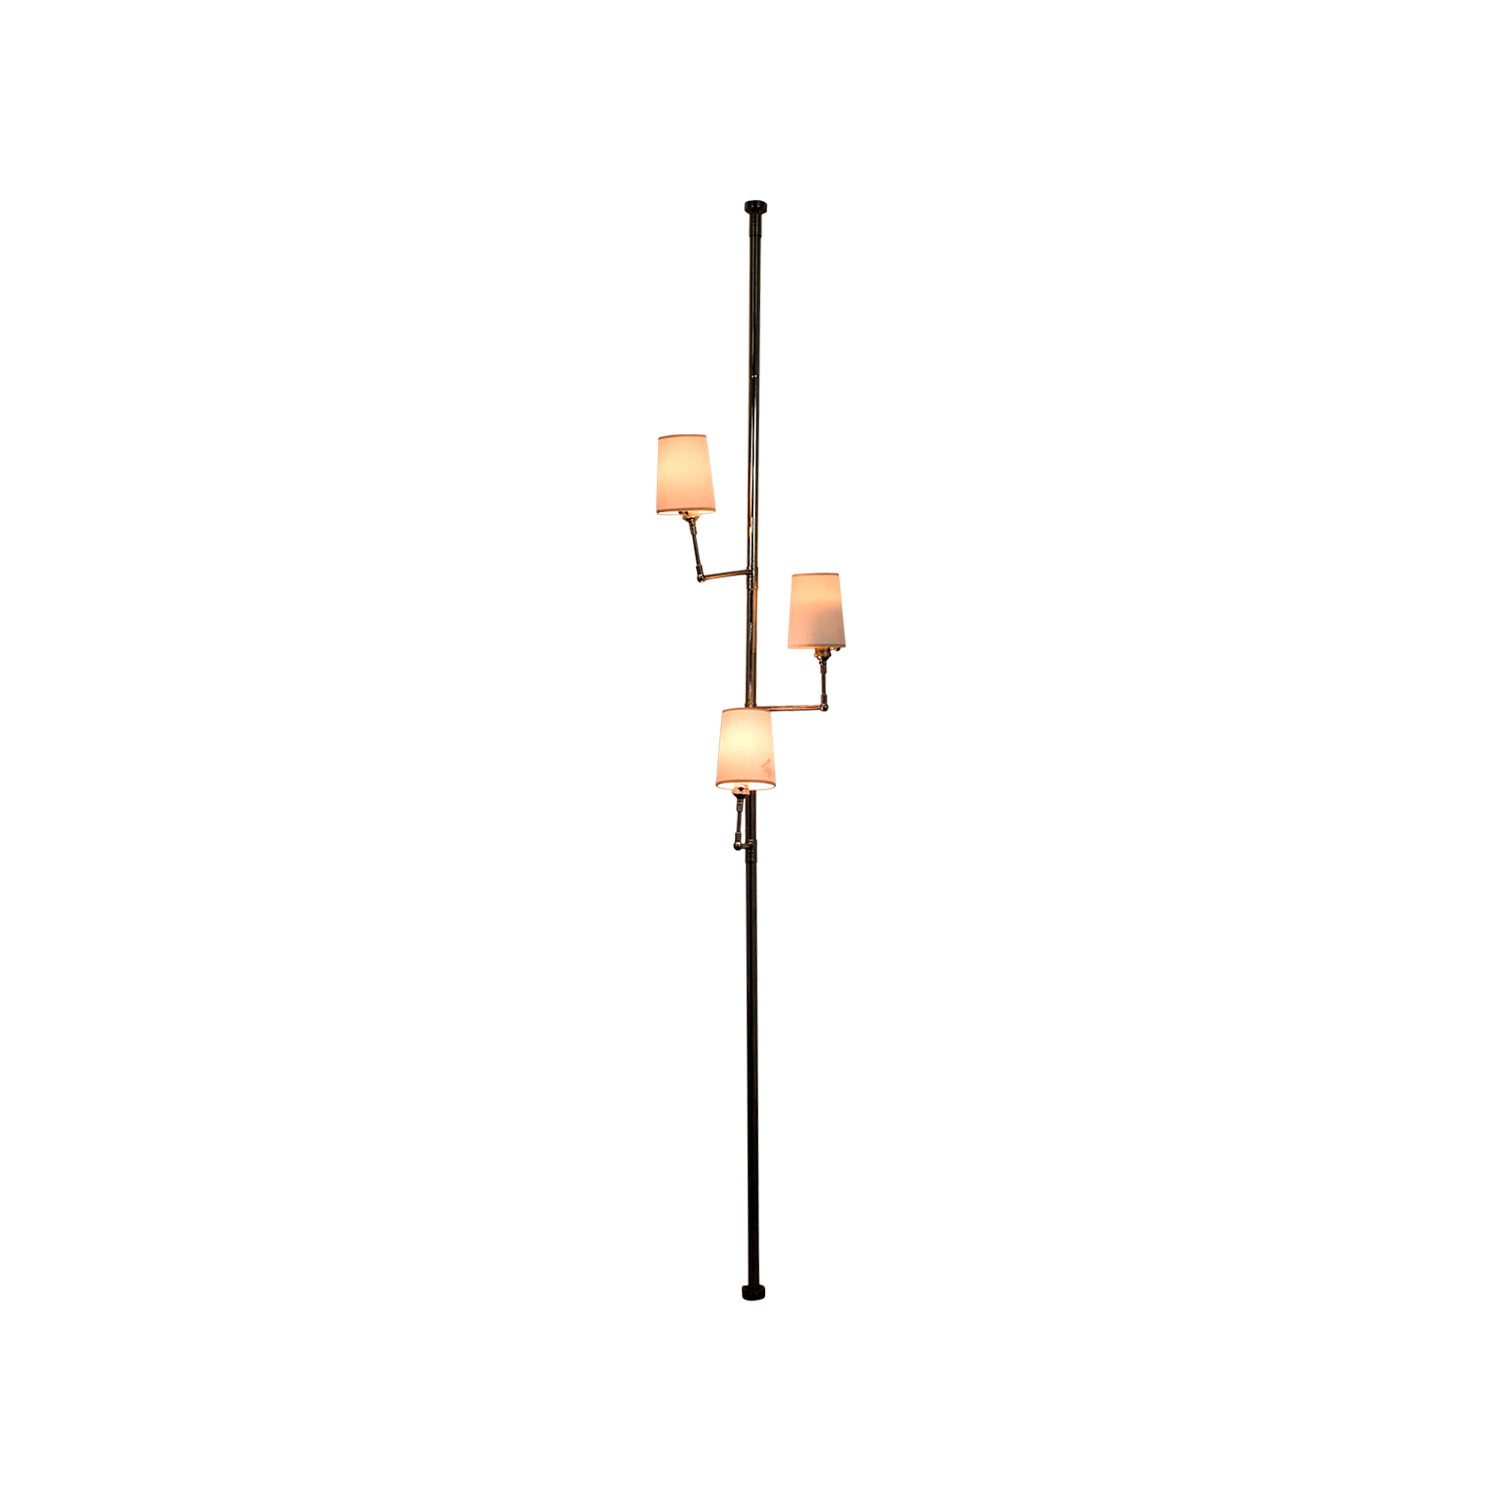 Ziyi Ziyi Tension Pole Lamp in Polished Nickel used